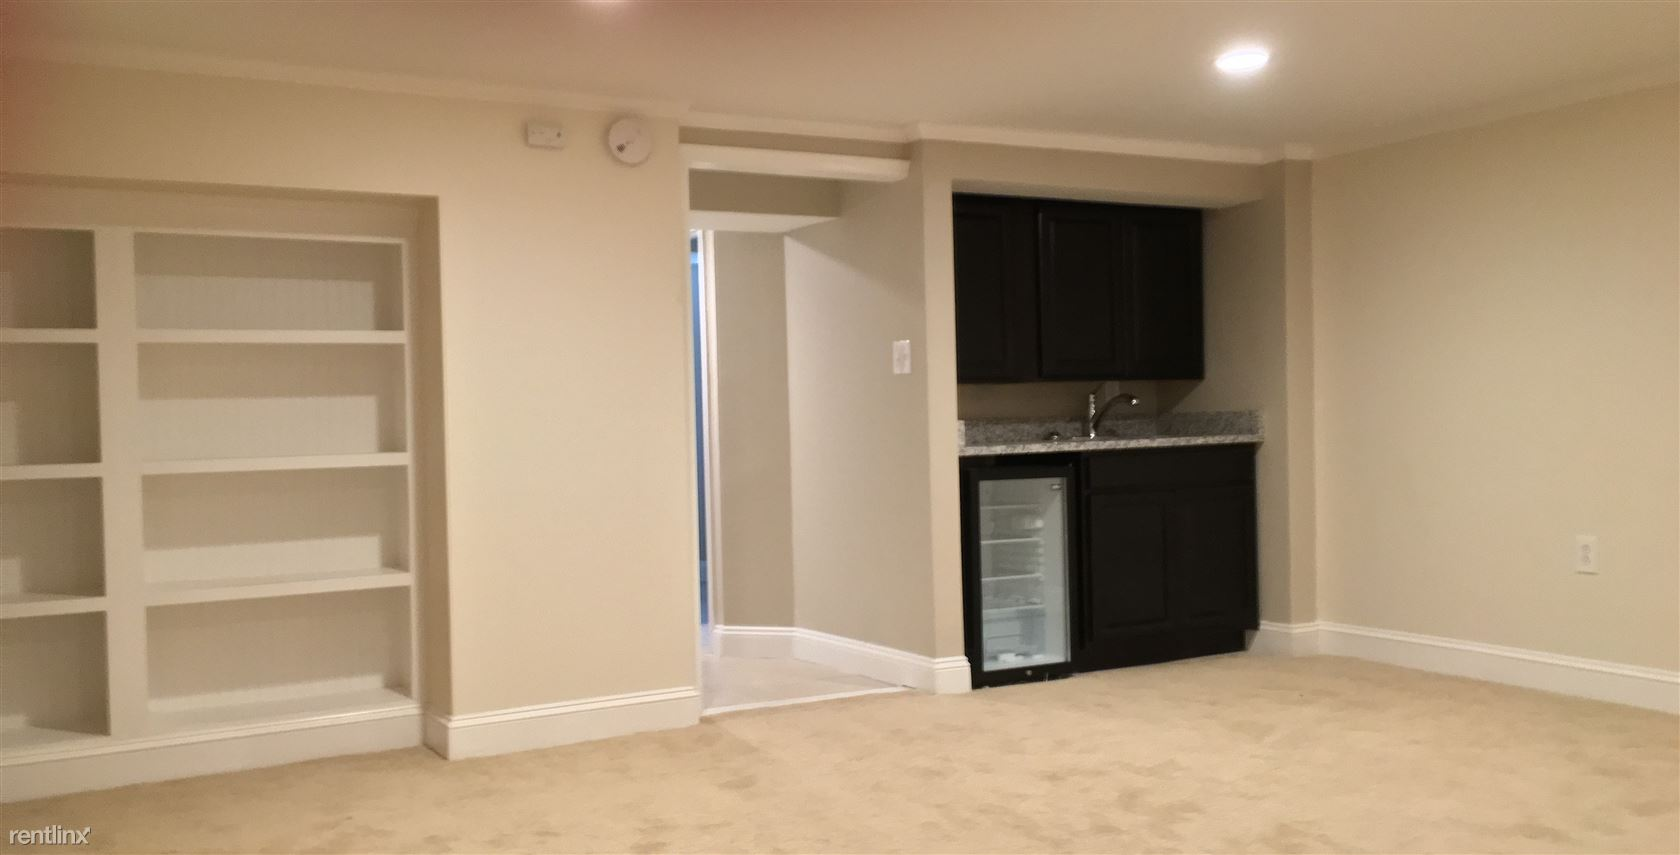 8103 Clyde Bank Rd, Towson, MD - $1,695